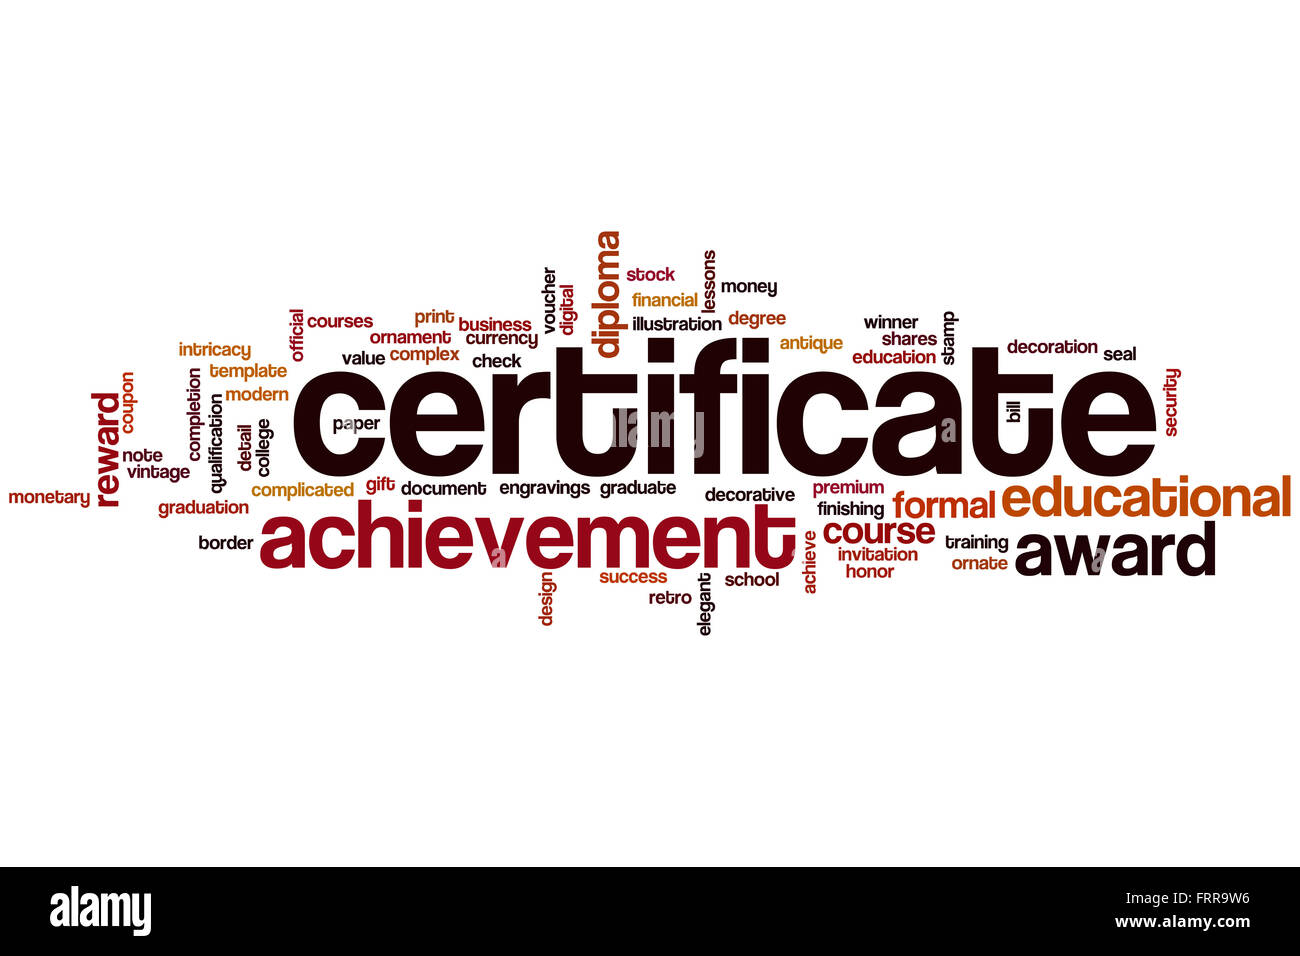 Certificate Word Cloud Concept  Certificate In Word